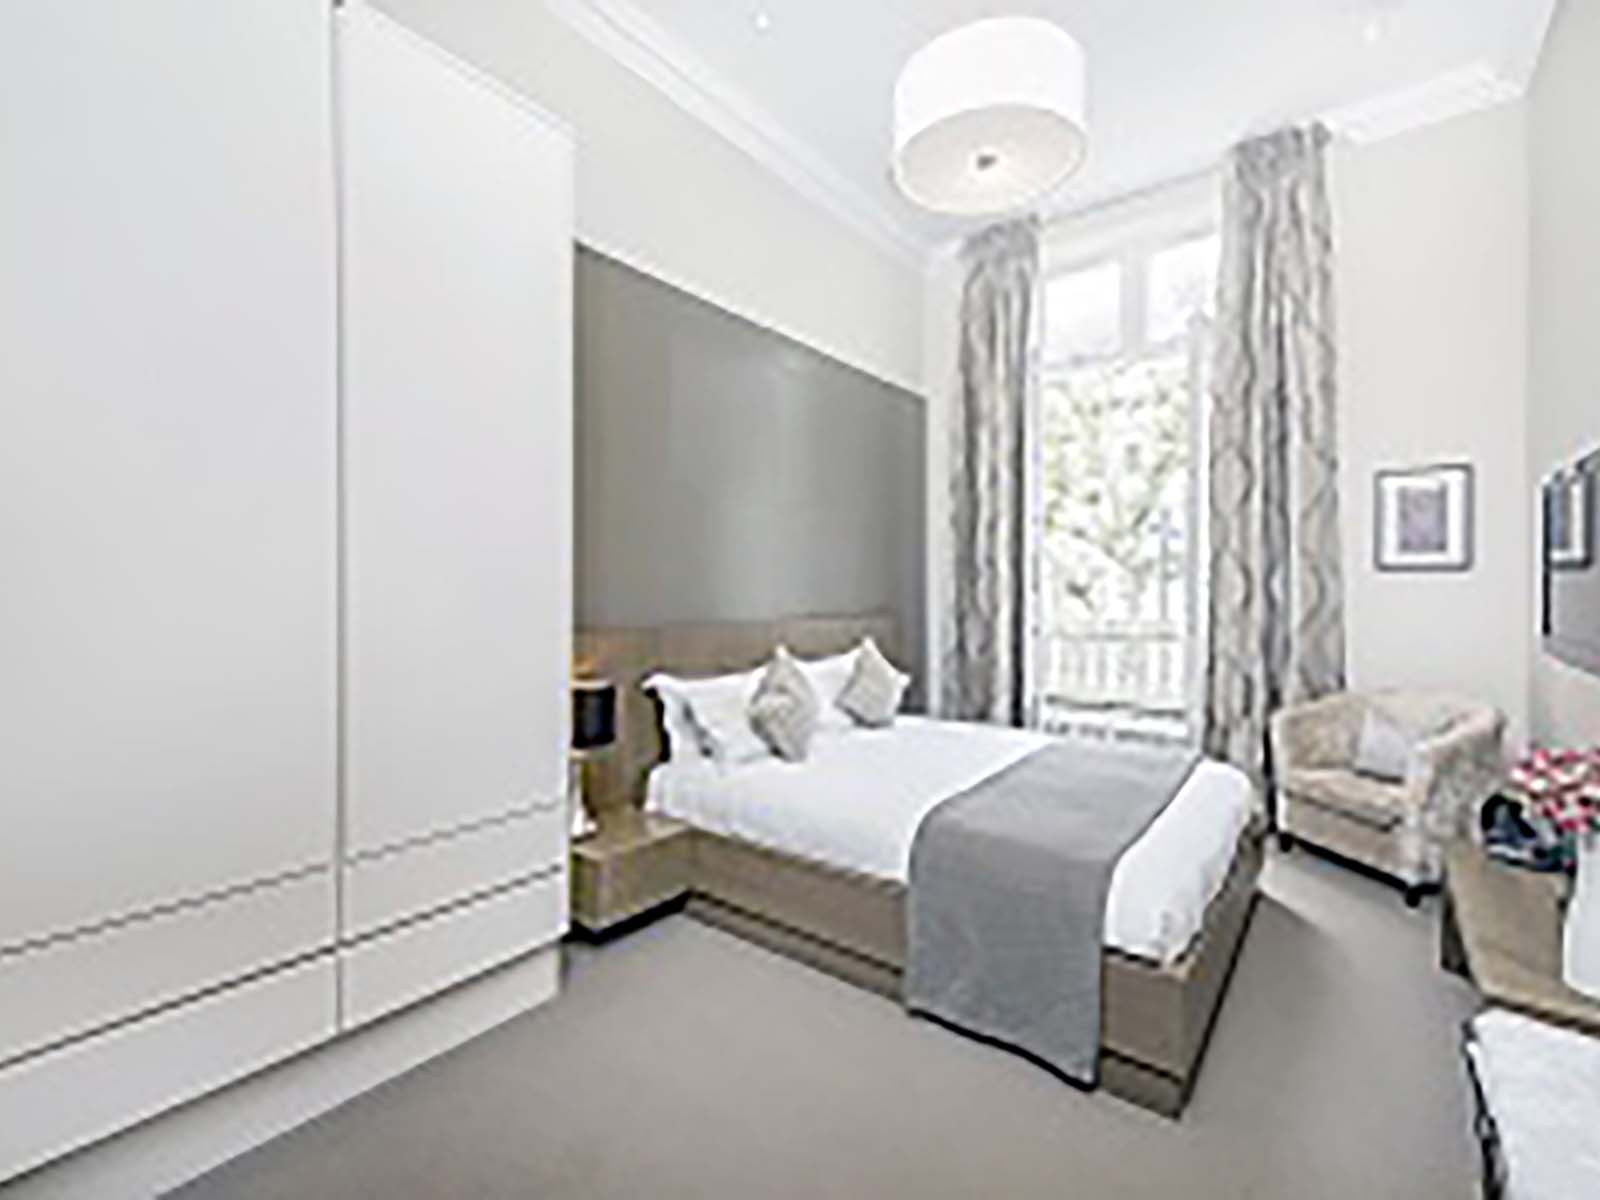 Bedroom at 130 Queens Gate Apartments, South Kensington, London - Citybase Apartments